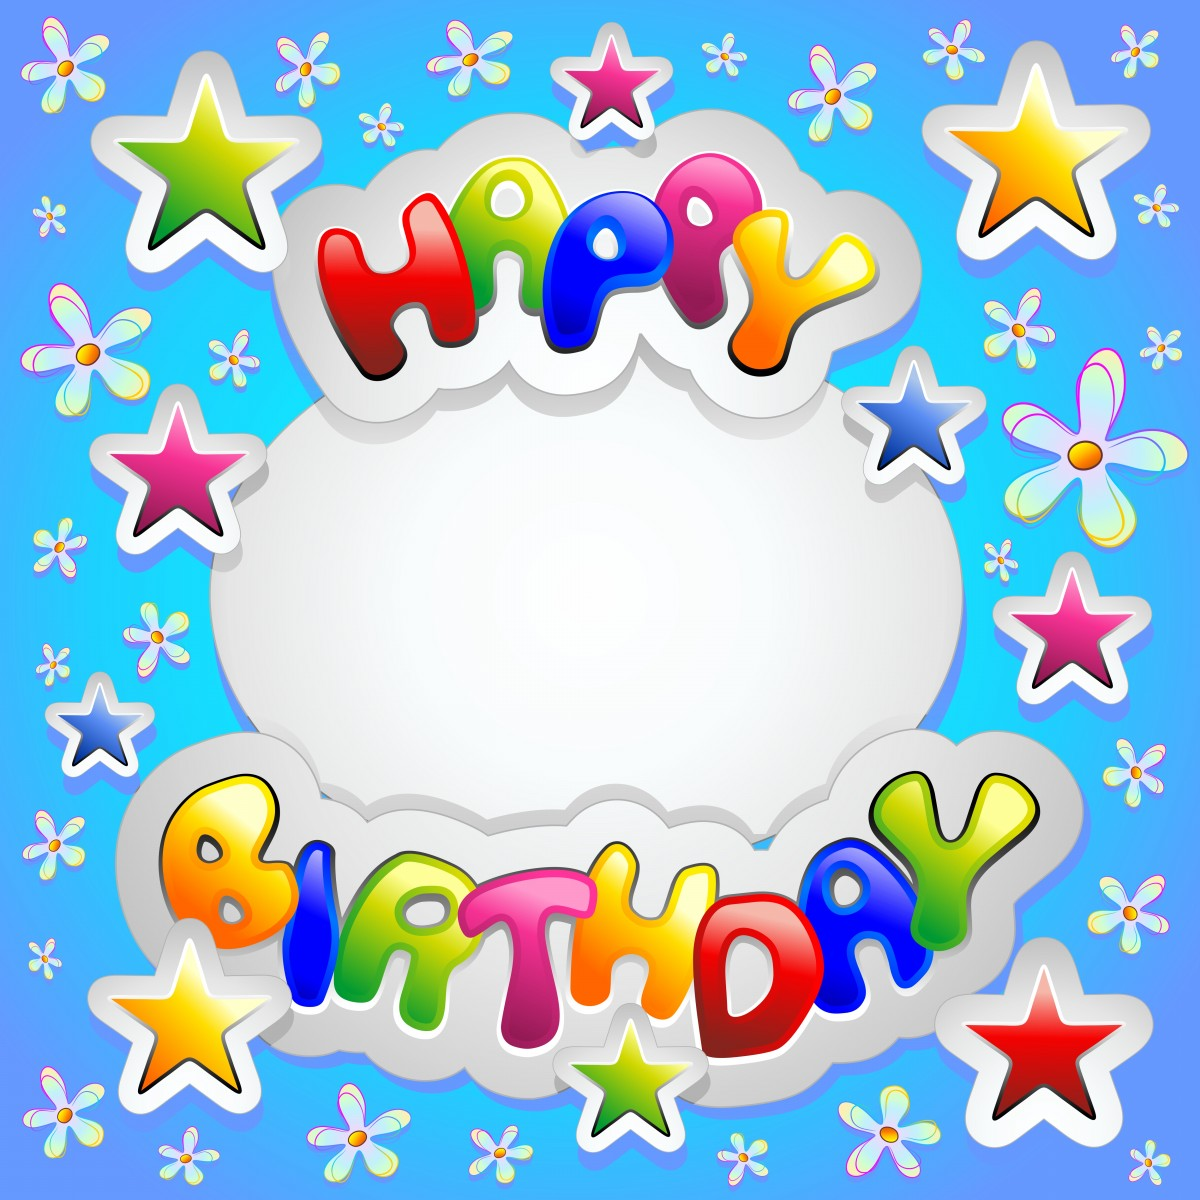 birthday greeting stickers ; e5700f02efee7c4b3226defee86b168b